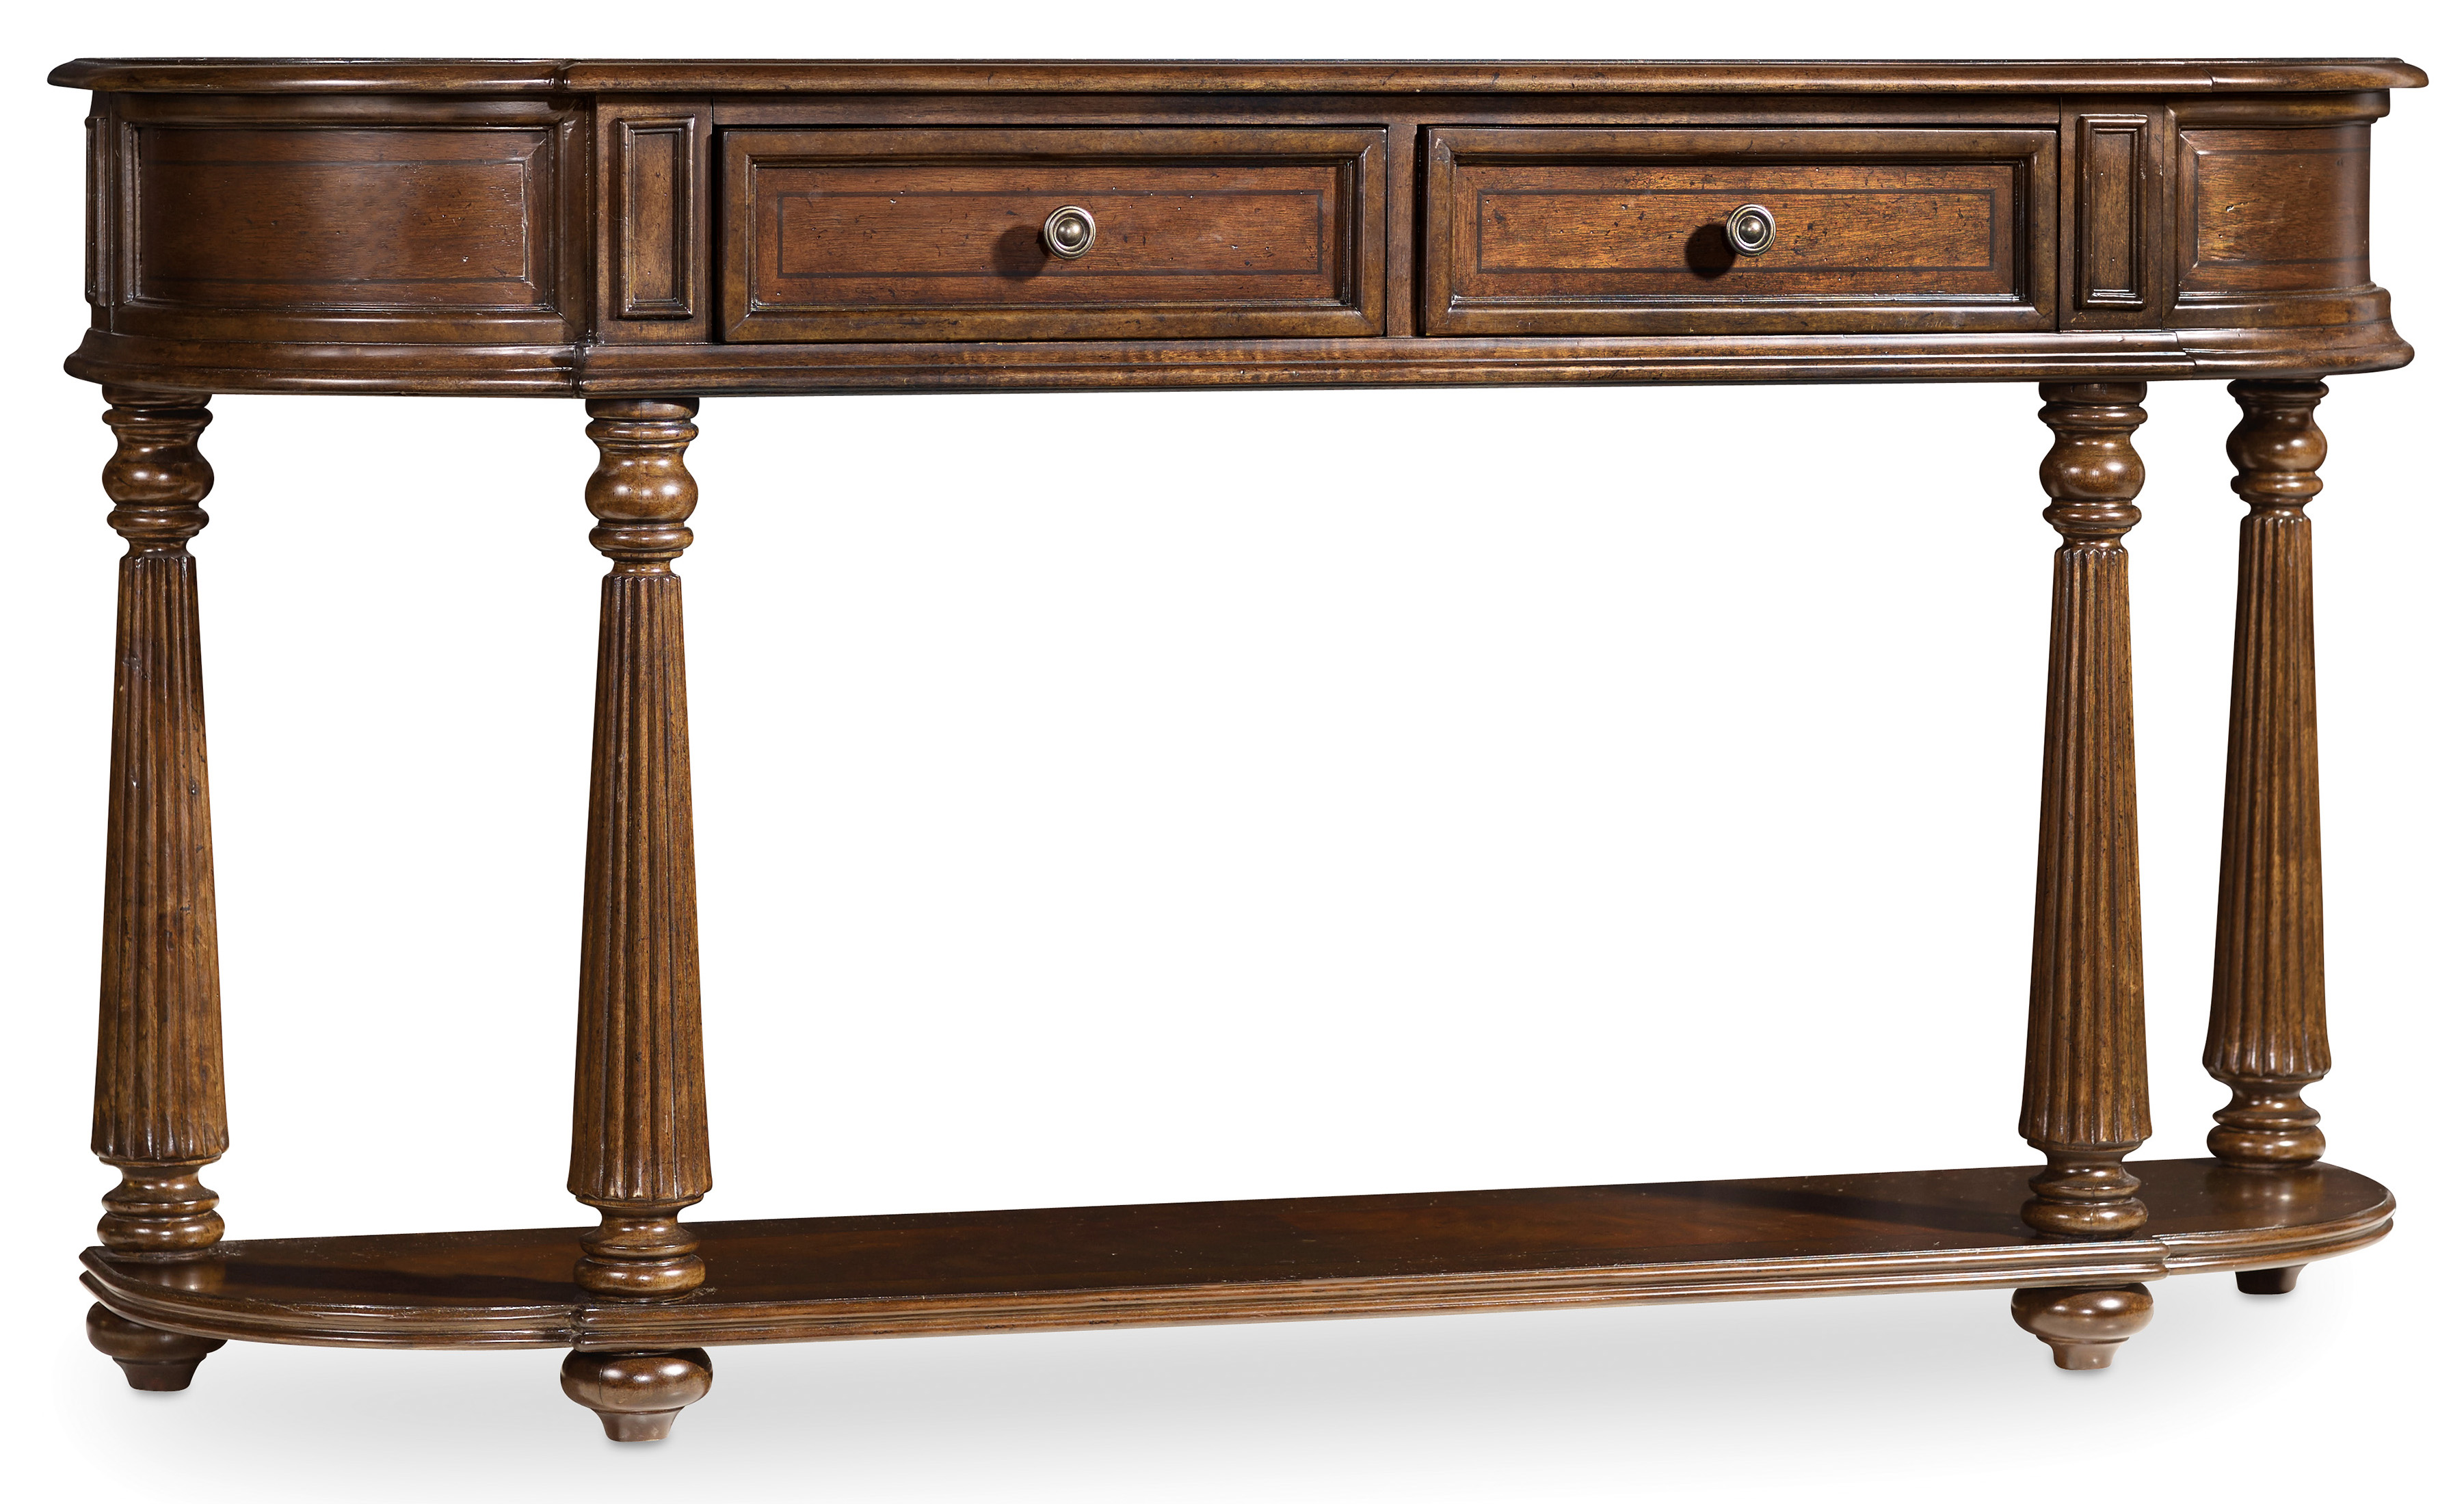 Hooker furniture leesburg 5381 80151 demilune hall console for Demilune console table with drawers